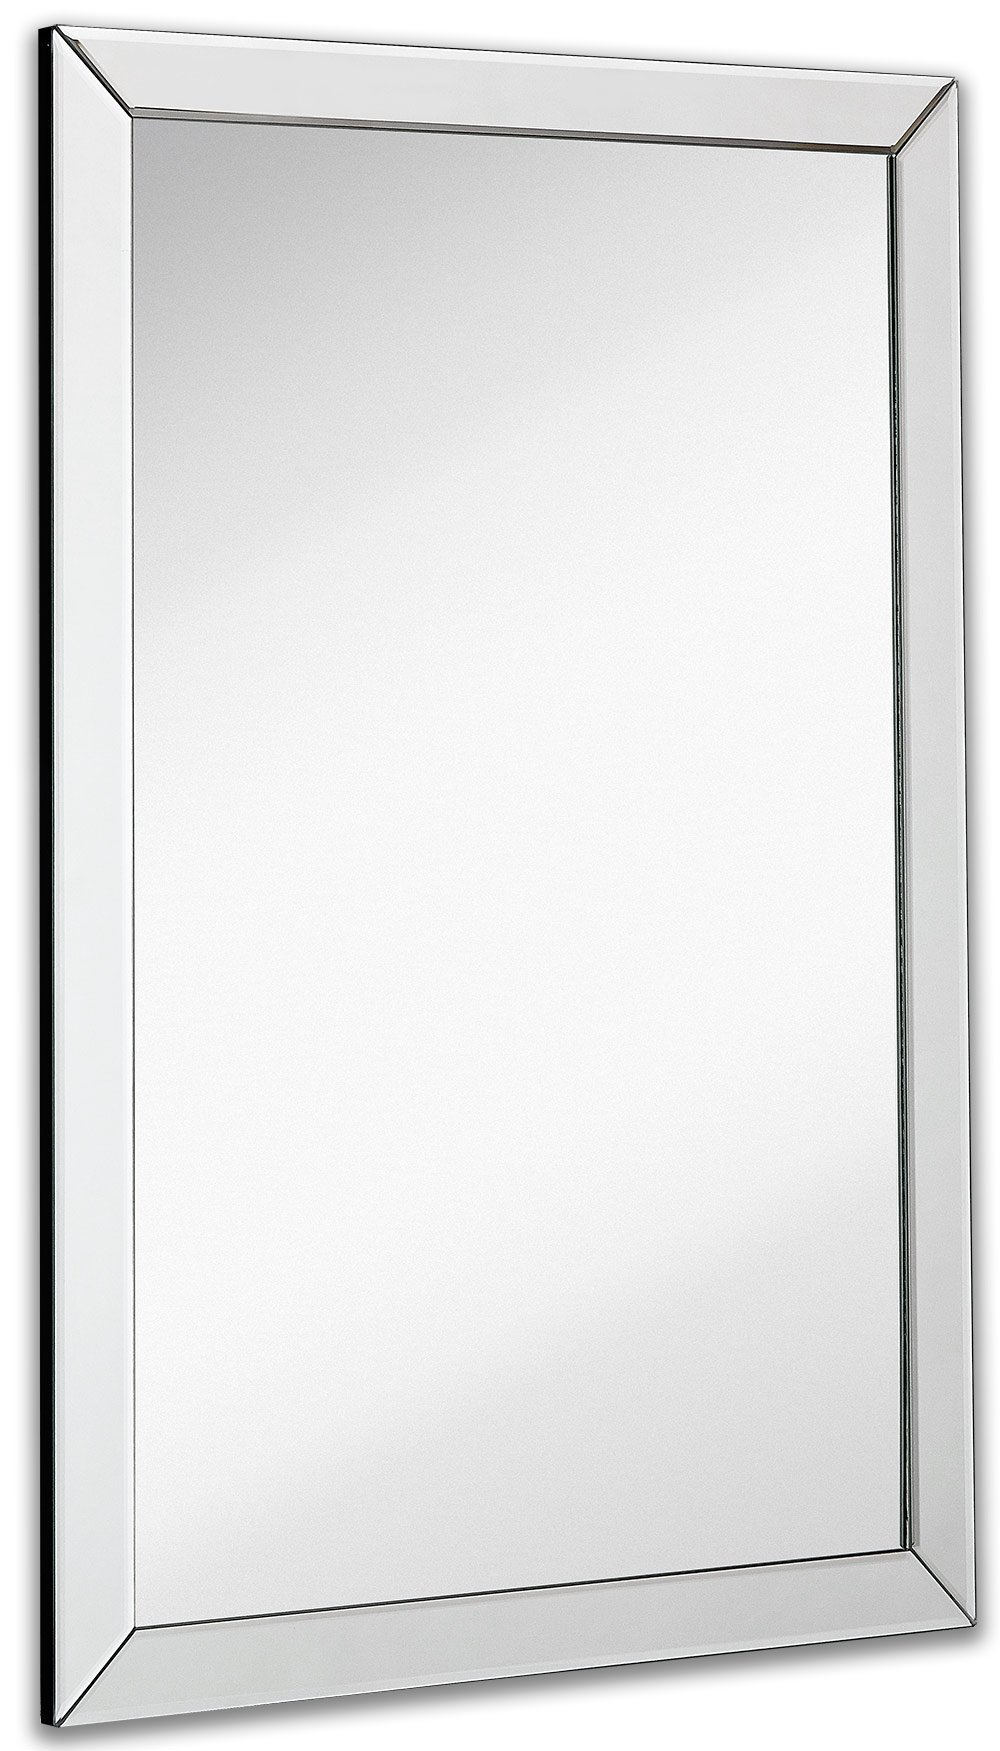 Large Flat Framed Wall Mirror with 2 Inch Edge Beveled Mirror Frame | Premium Silver Backed Glass Panel | Vanity, Bedroom, or Bathroom | Mirrored Rectangle Hangs Horizontal or Vertical (24'' x 36'')